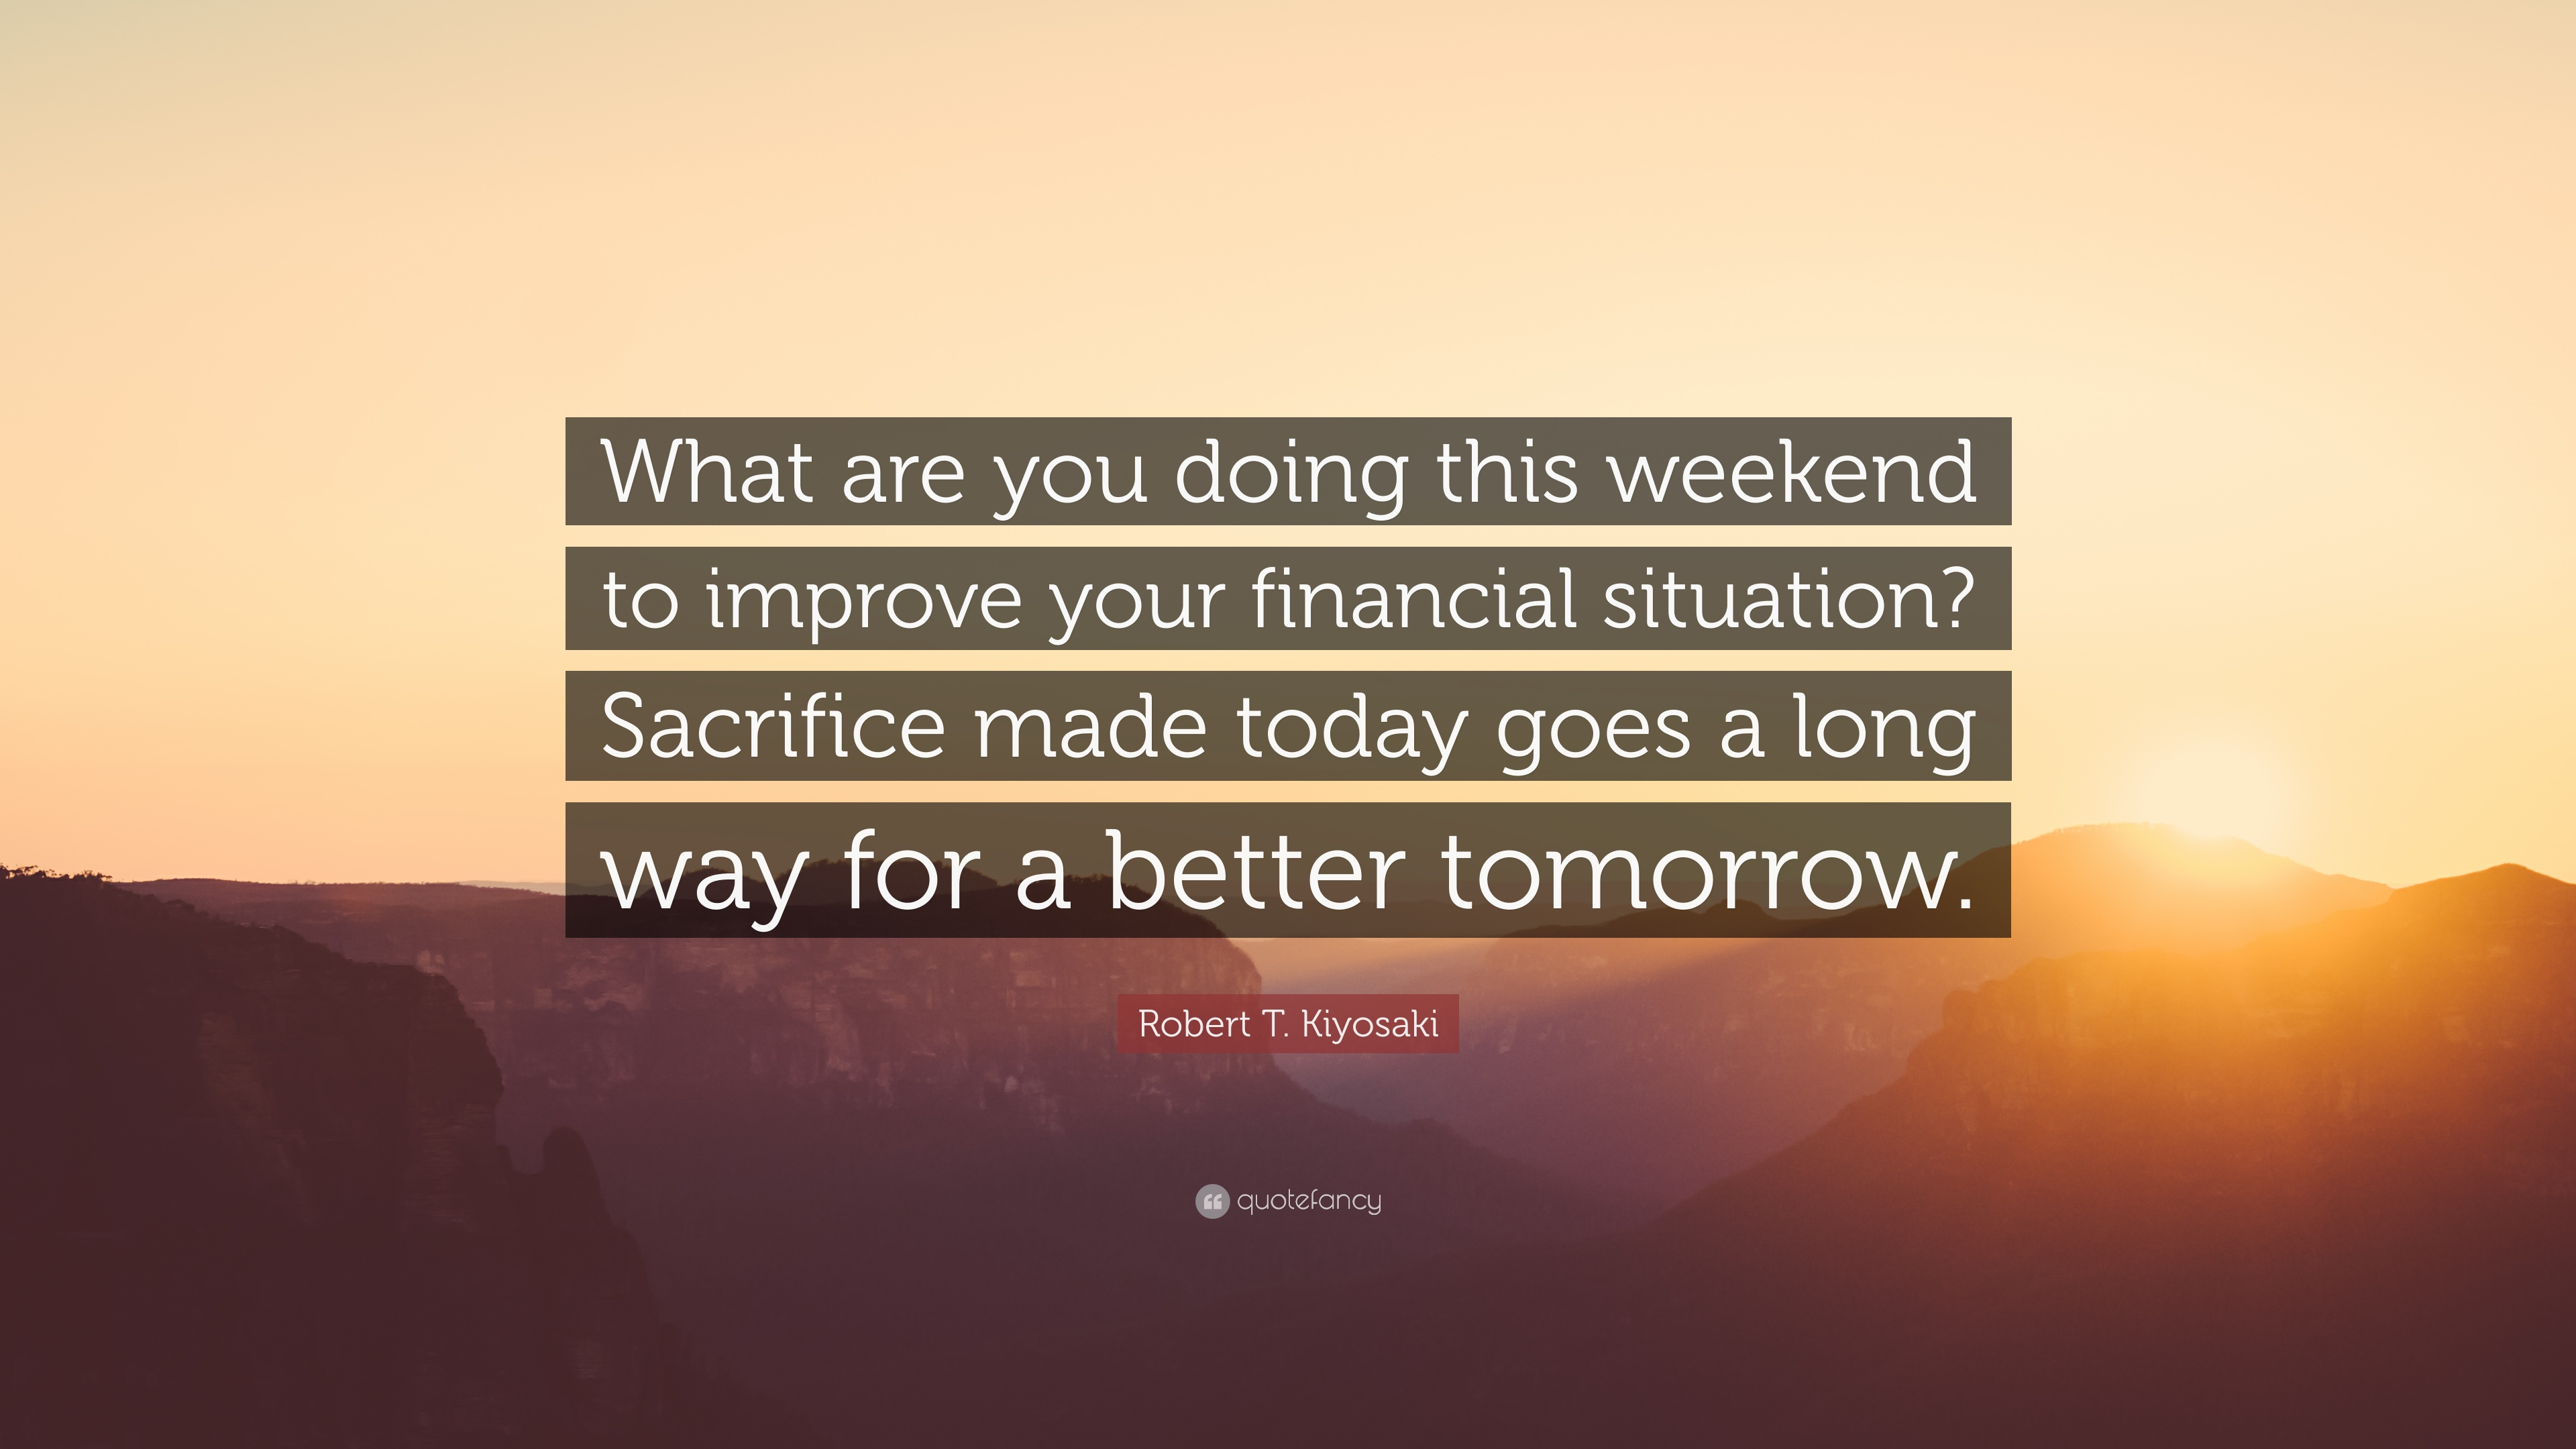 Robert T Kiyosaki Quote What Are You Doing This Weekend To